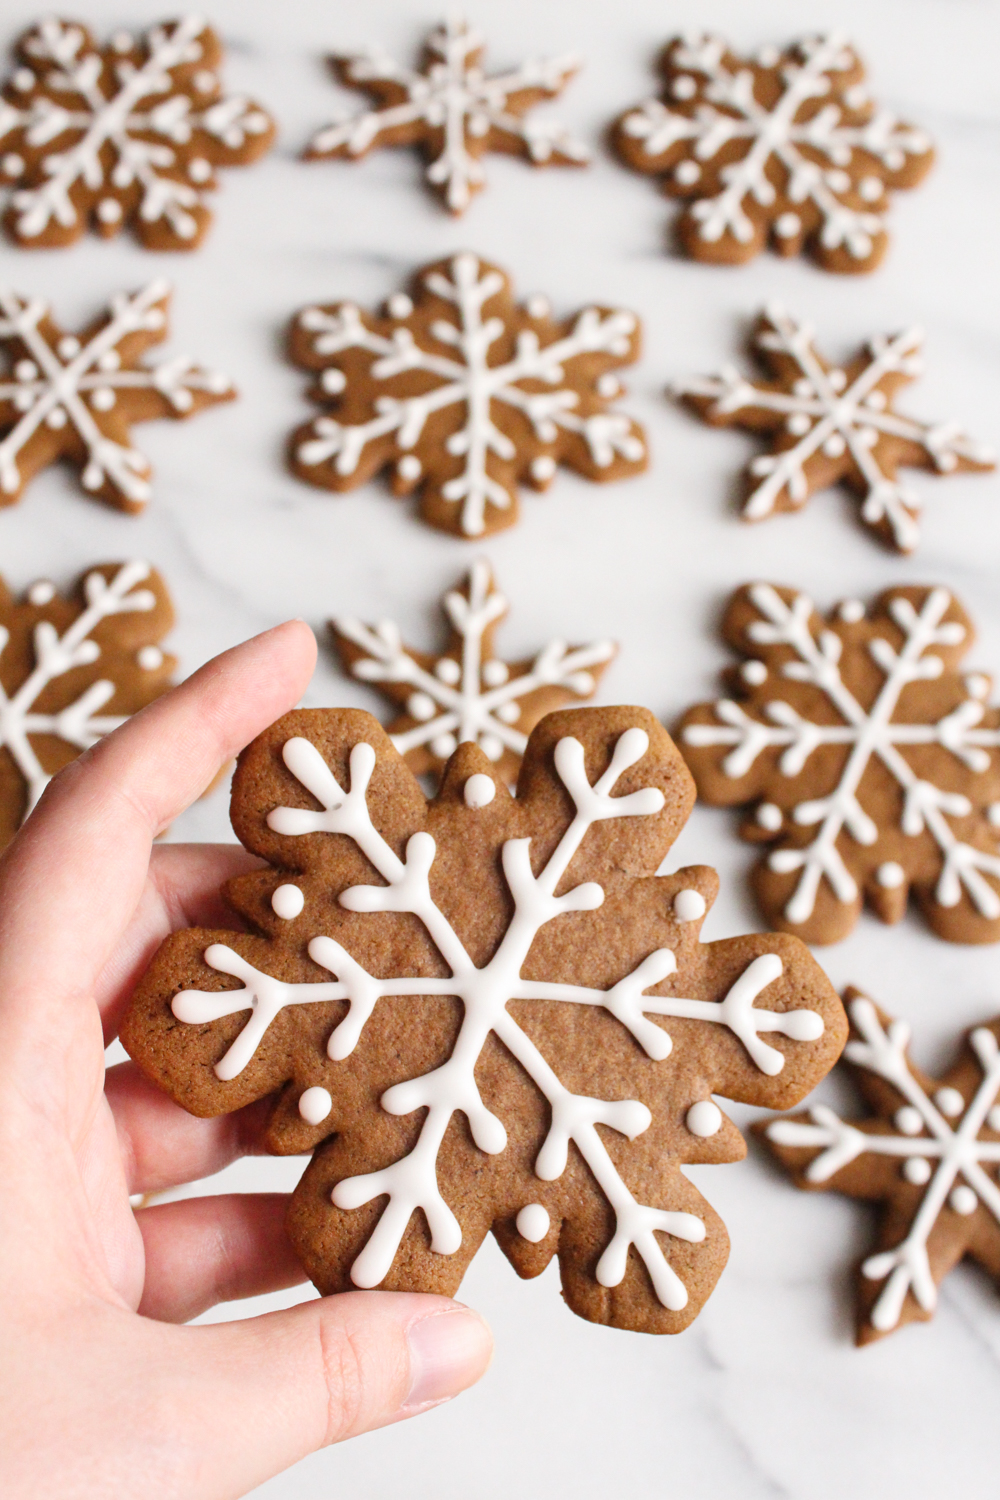 hand holding a snowflake gingerbread cookie with icing over a marble surface